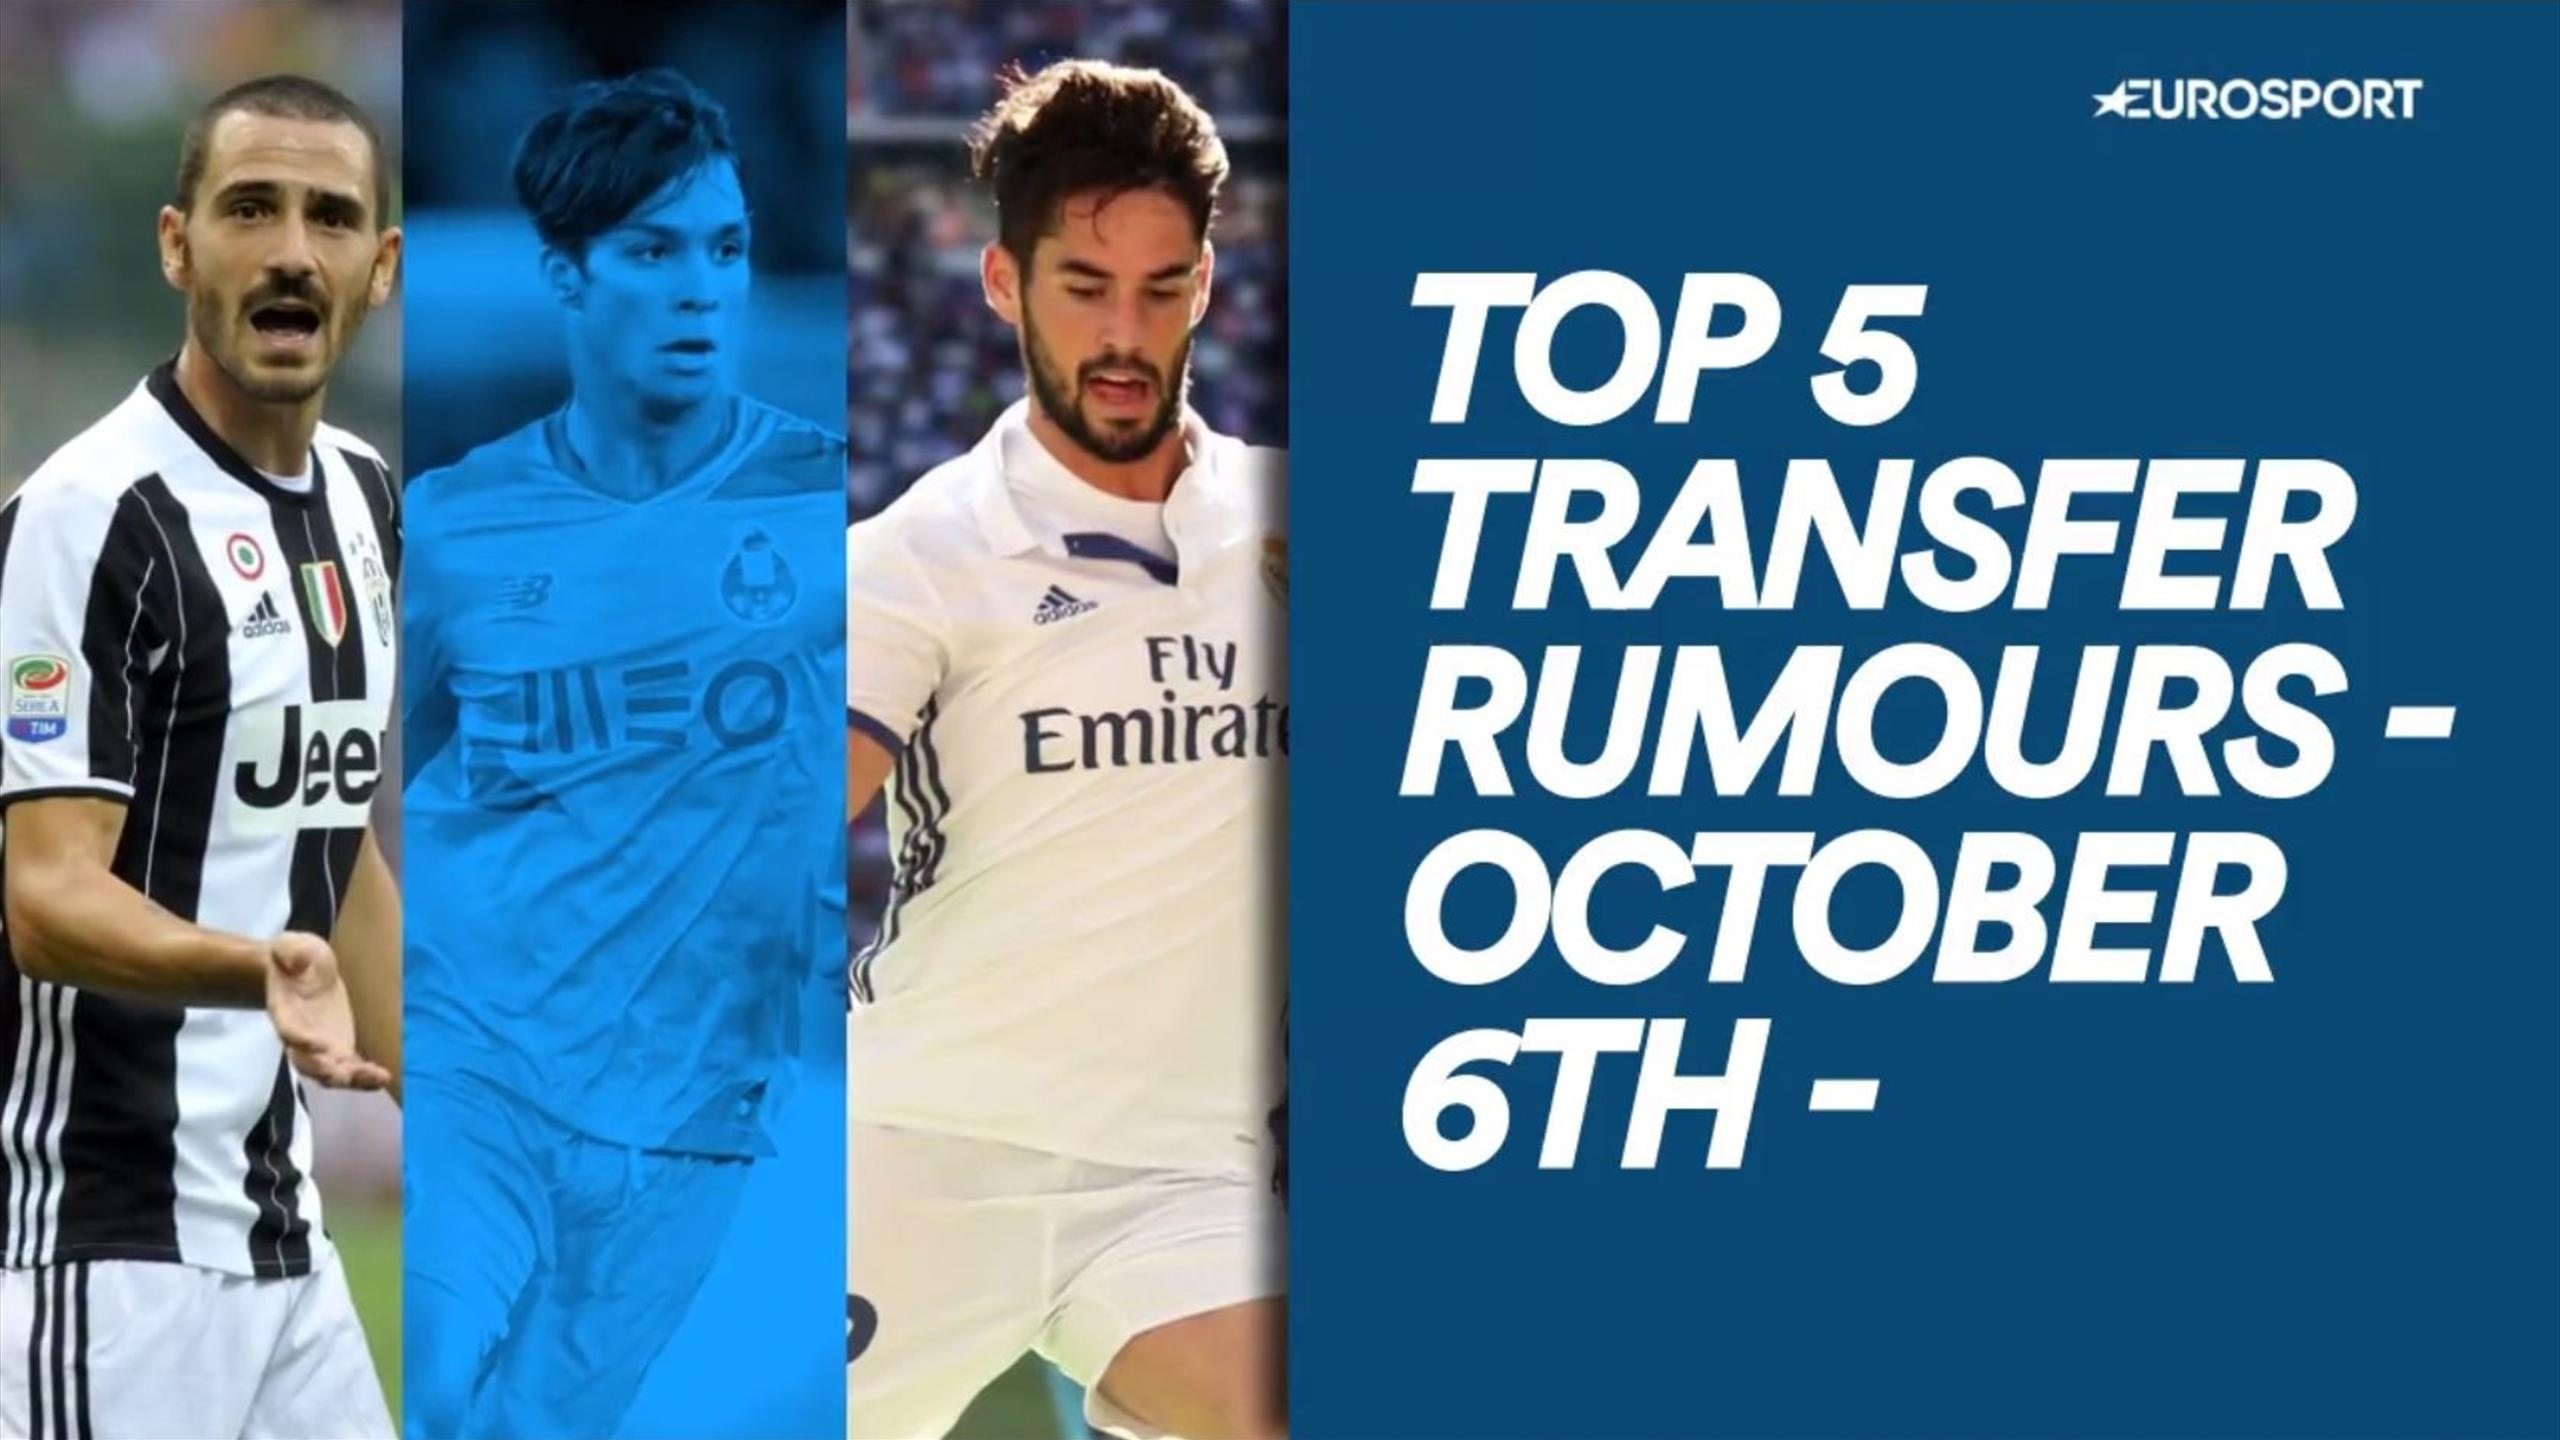 Top 5 Transfer Rumours: Chelsea to make Bonucci world's most expensive defender